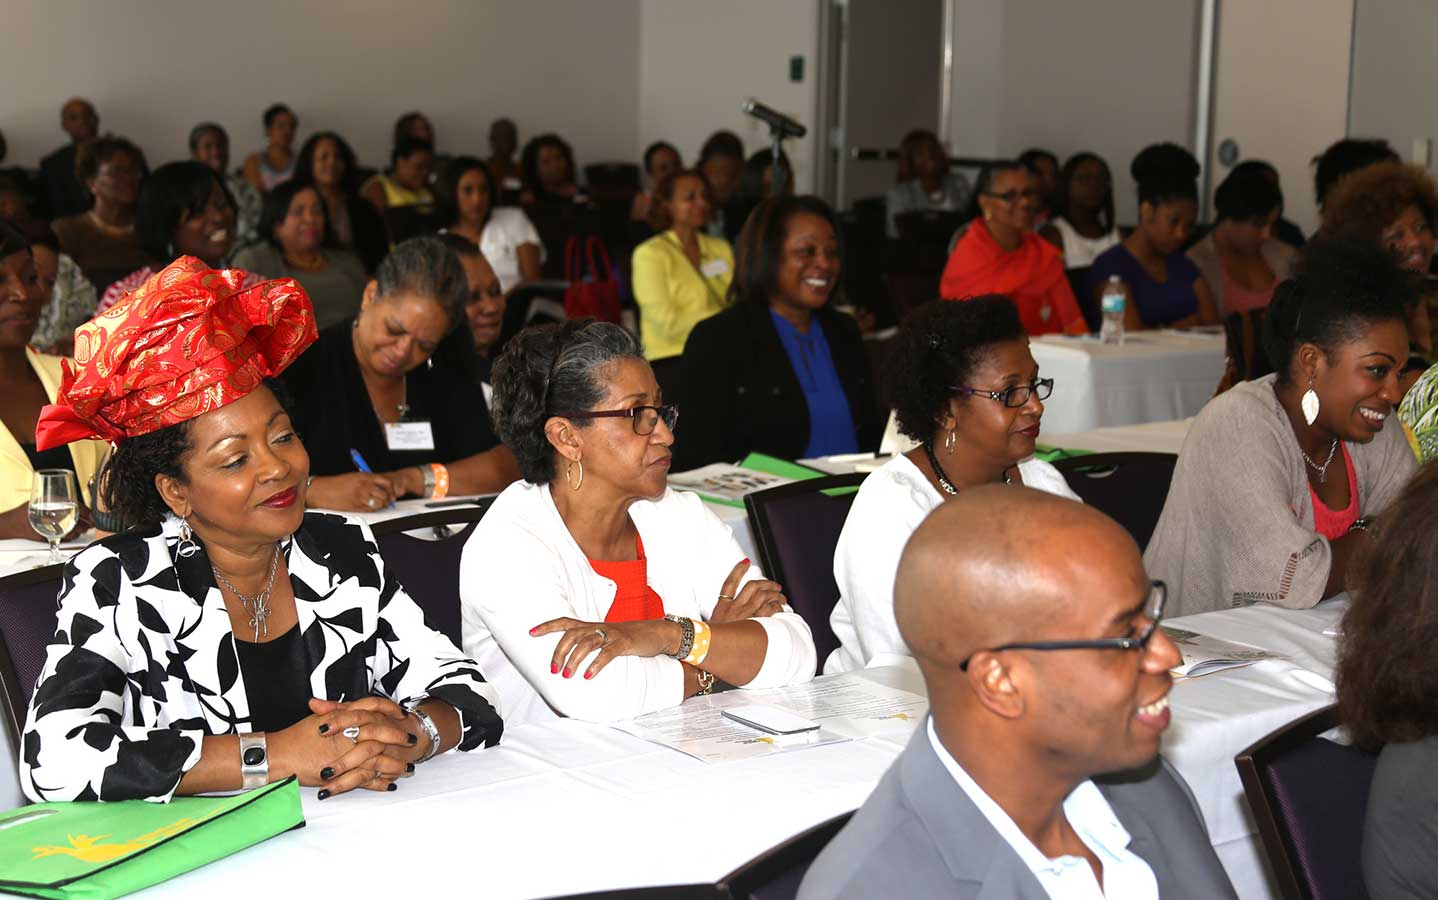 jwof-2015-womens-empowerment-conference-attendees.jpg